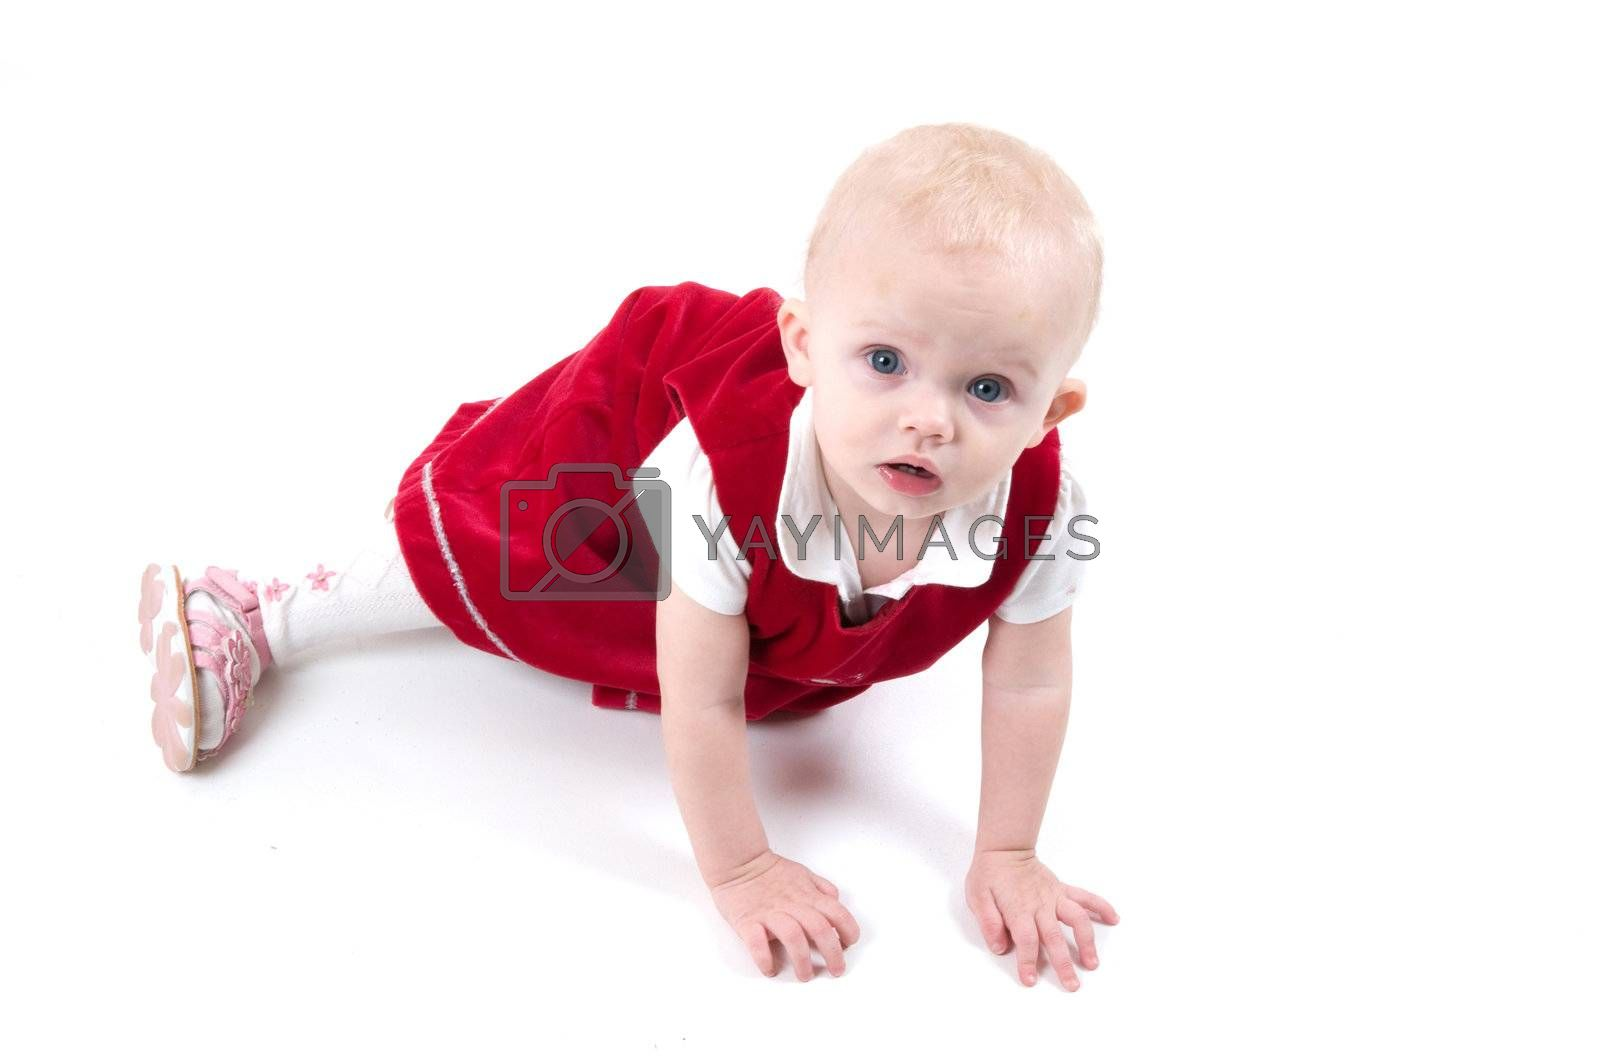 Baby in red is sitting on the floor